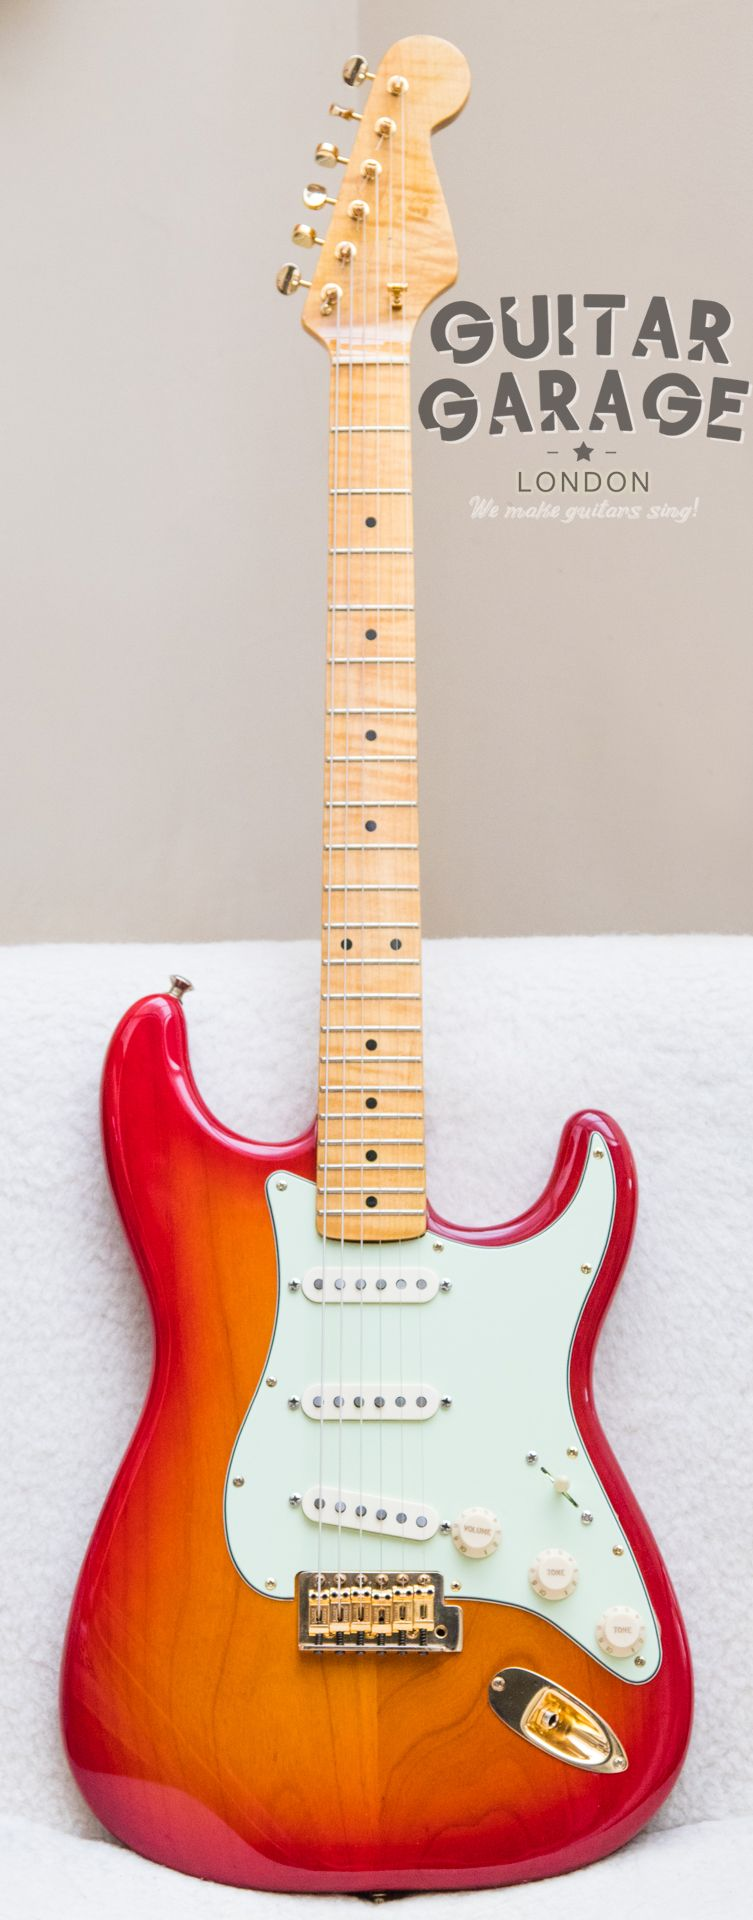 2014 Fender Stratocaster Custom Swamp Ash with AAA+ Flame neck and AmSt pickups and gold hardware